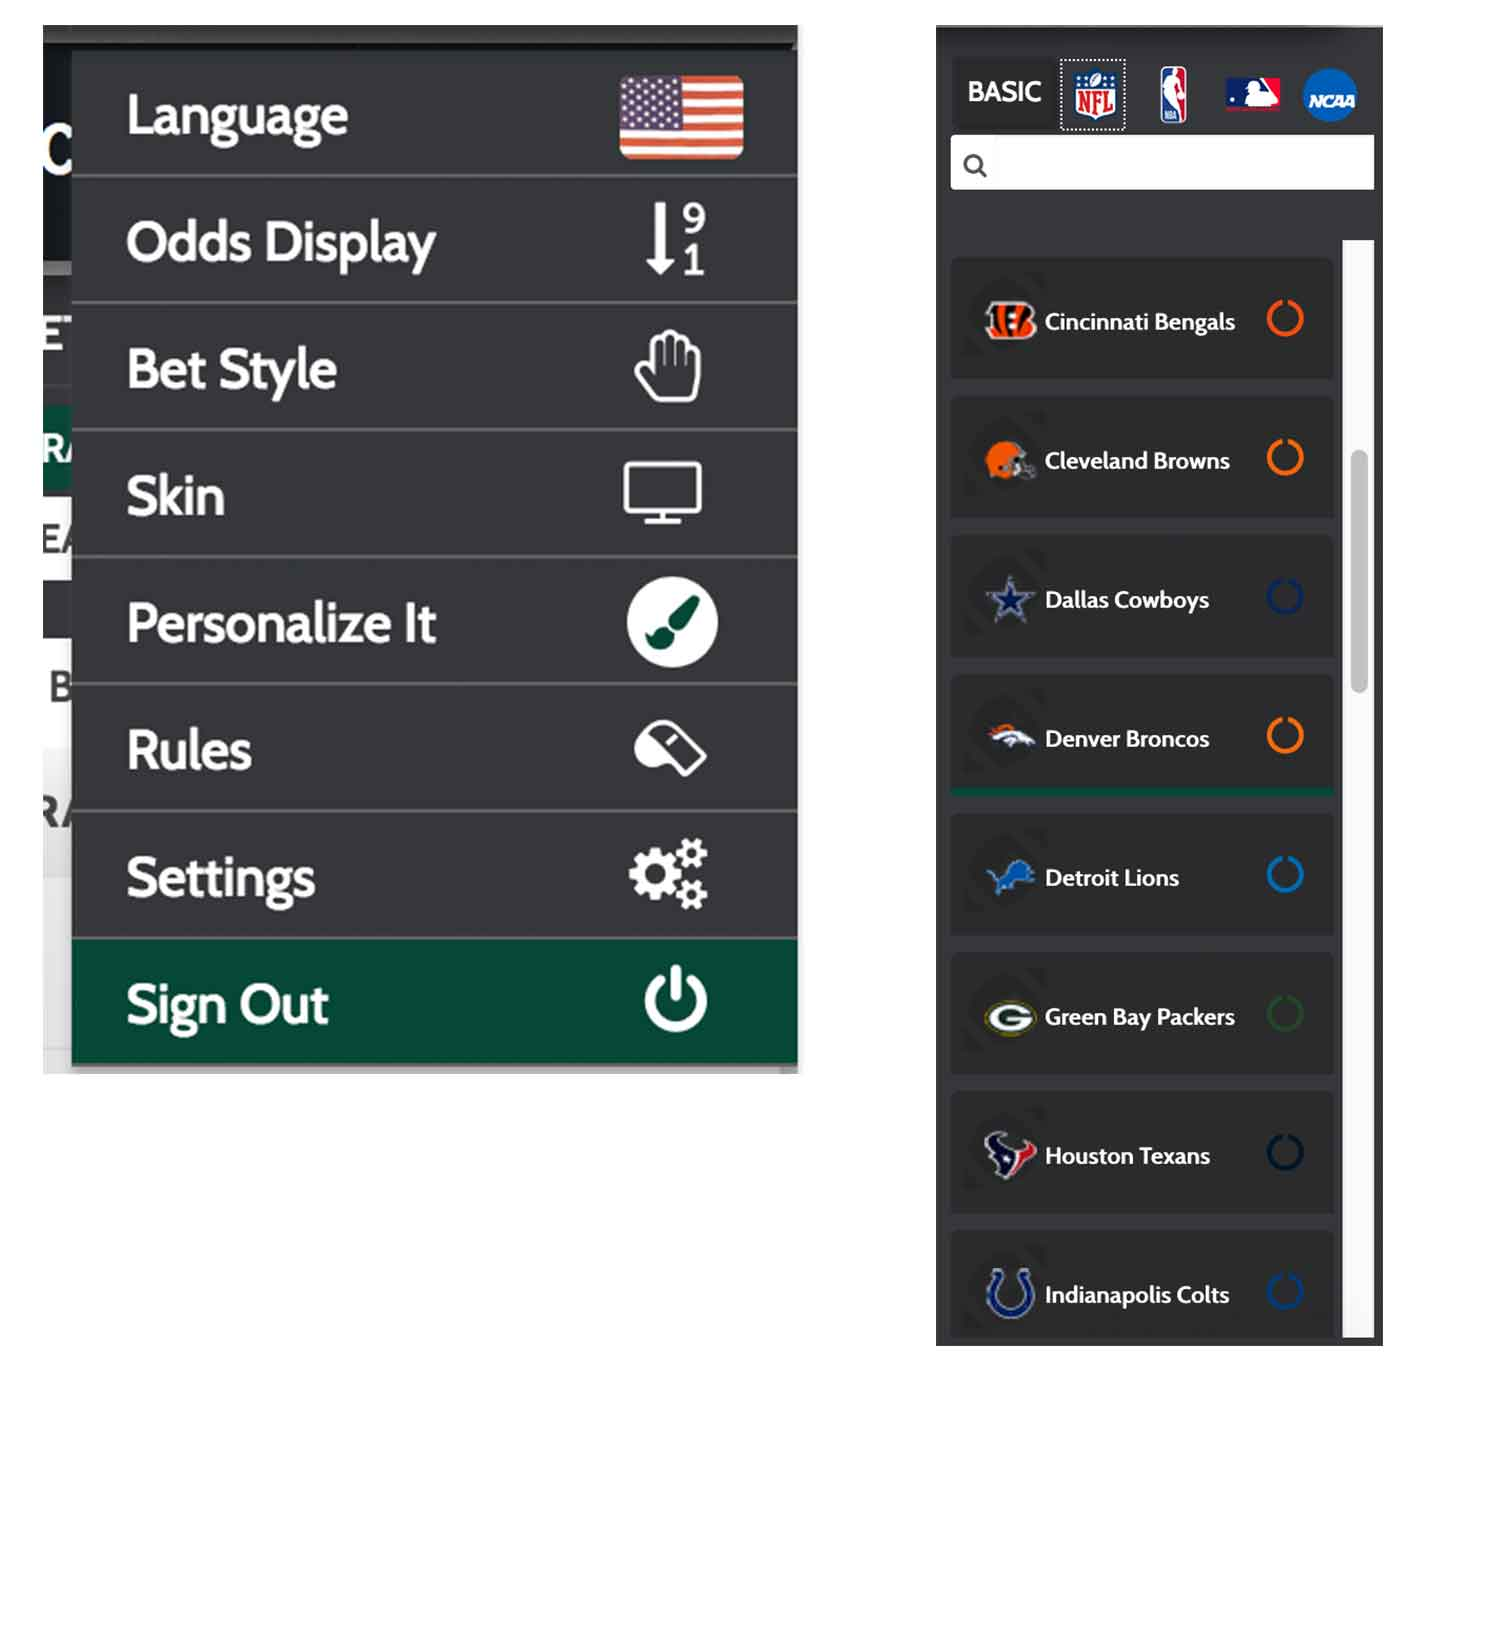 Sportsbook personalization options at PPHSportsbook.net